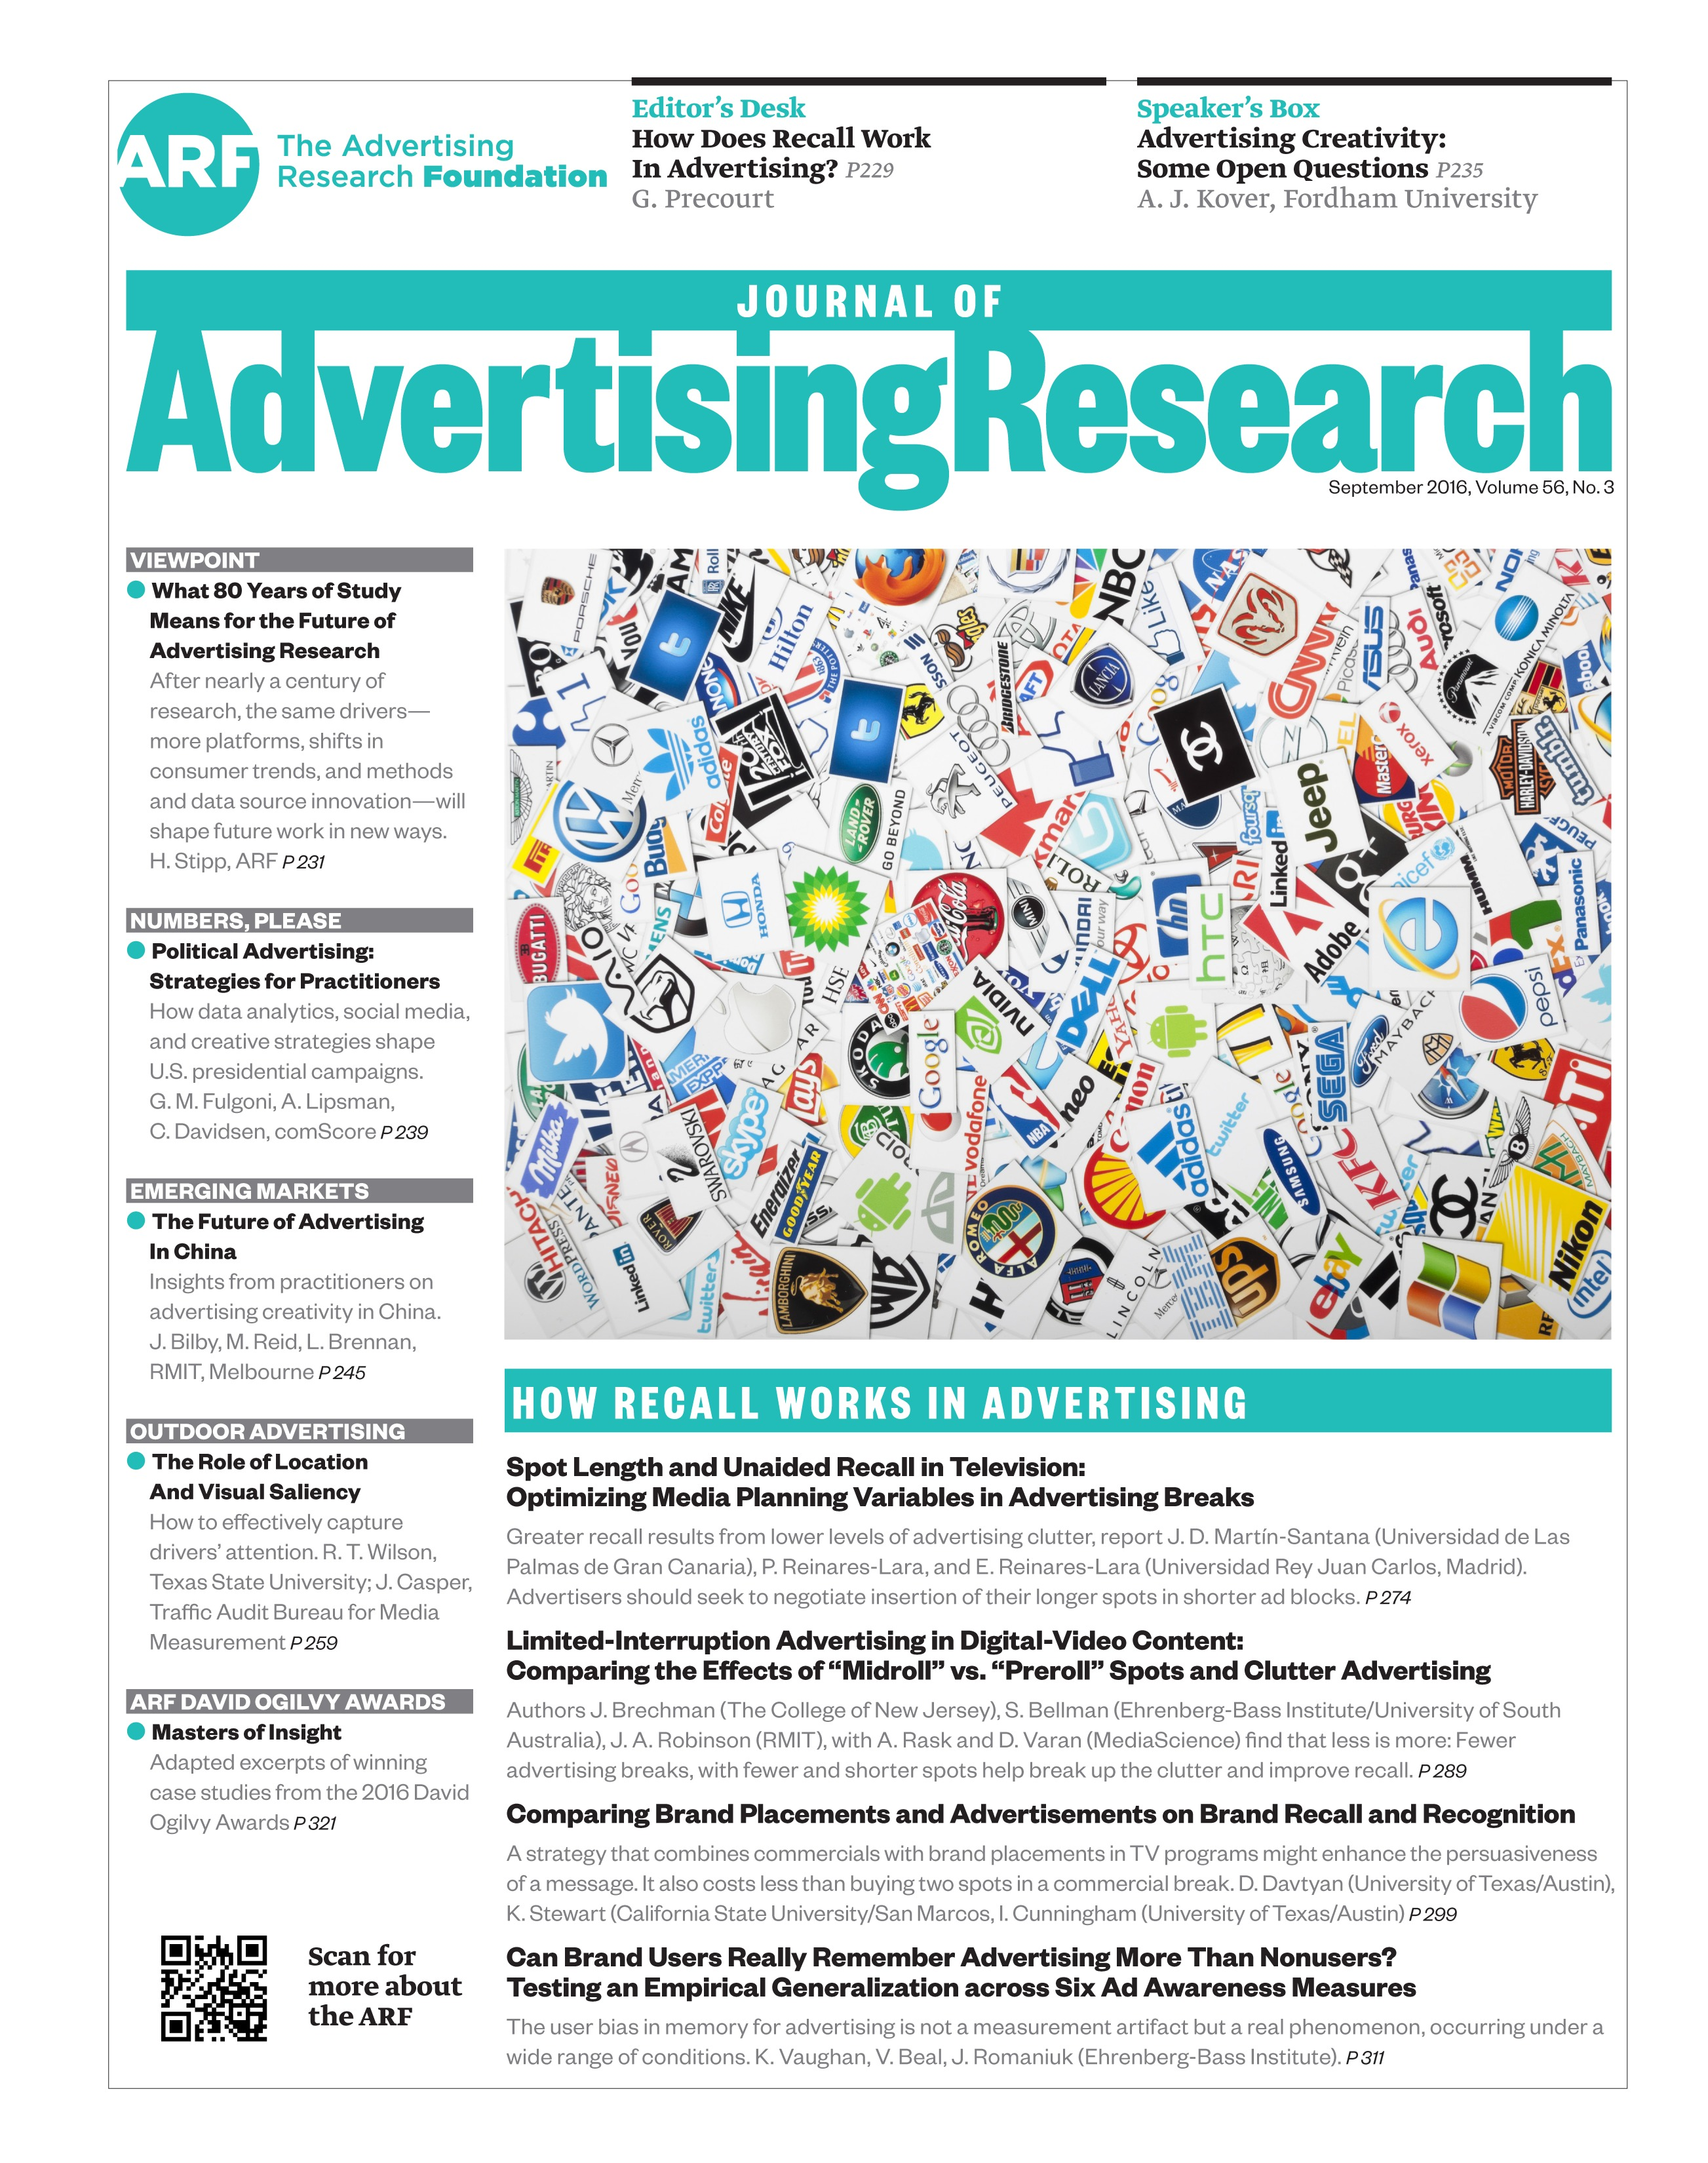 thesis on advertising strategy The role of marketing research in managing customer relations &#61607 defining marketing research marketing research is defined as a form of applied sociology that concentrates on understanding the behaviors, whims and preferences, of consumers in a market-based economy.